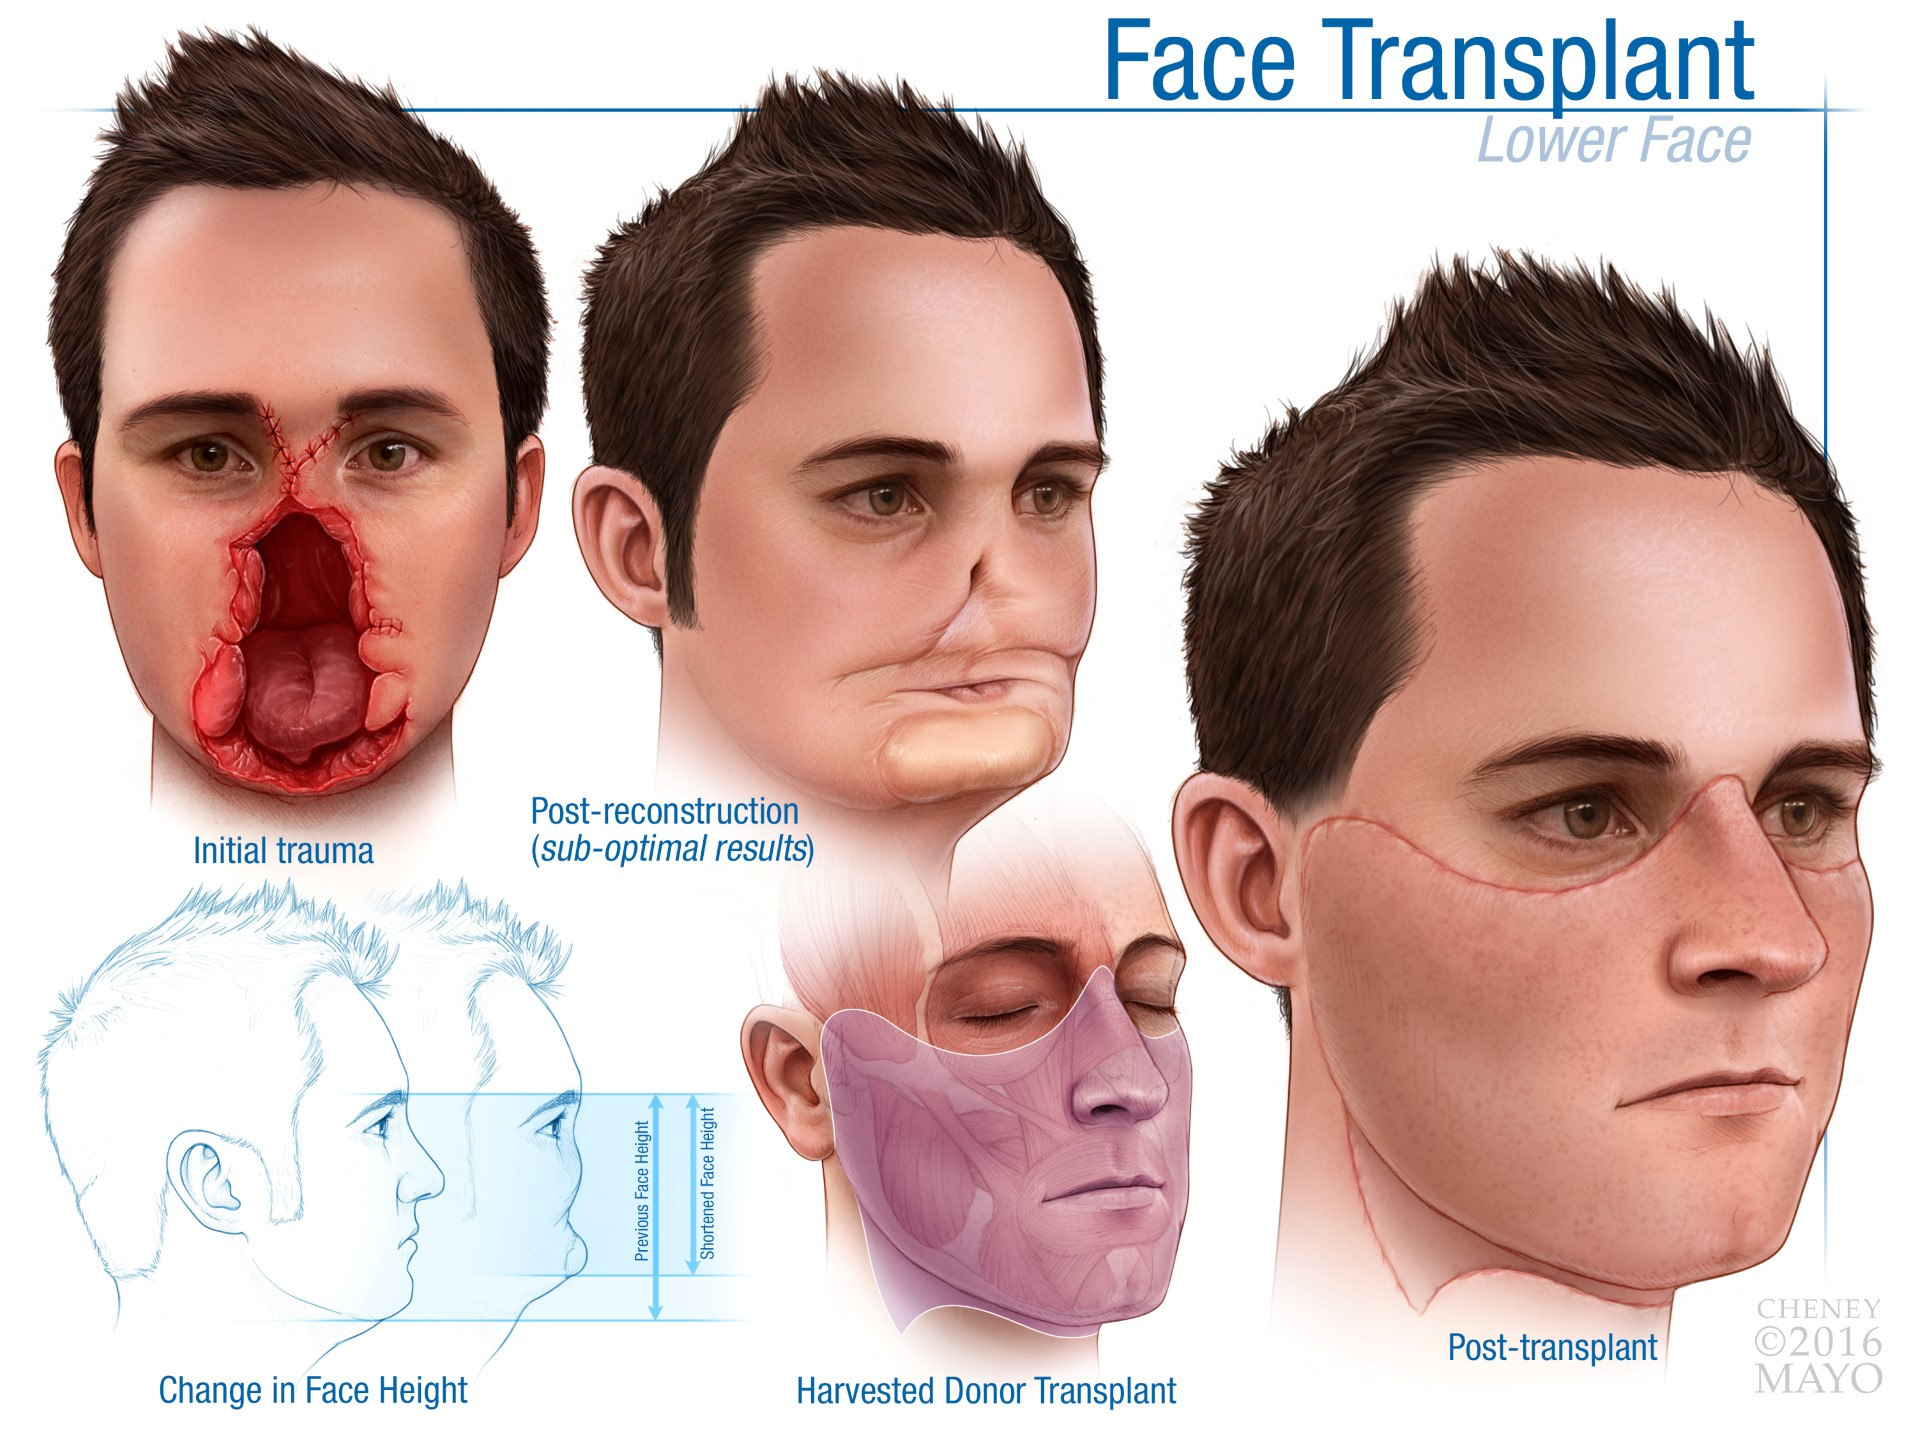 face transplants essay Pros and cons of liver transplant ethical issues regarding liver transplants revolves around would you choose to secure a liver transplant or face death as a.